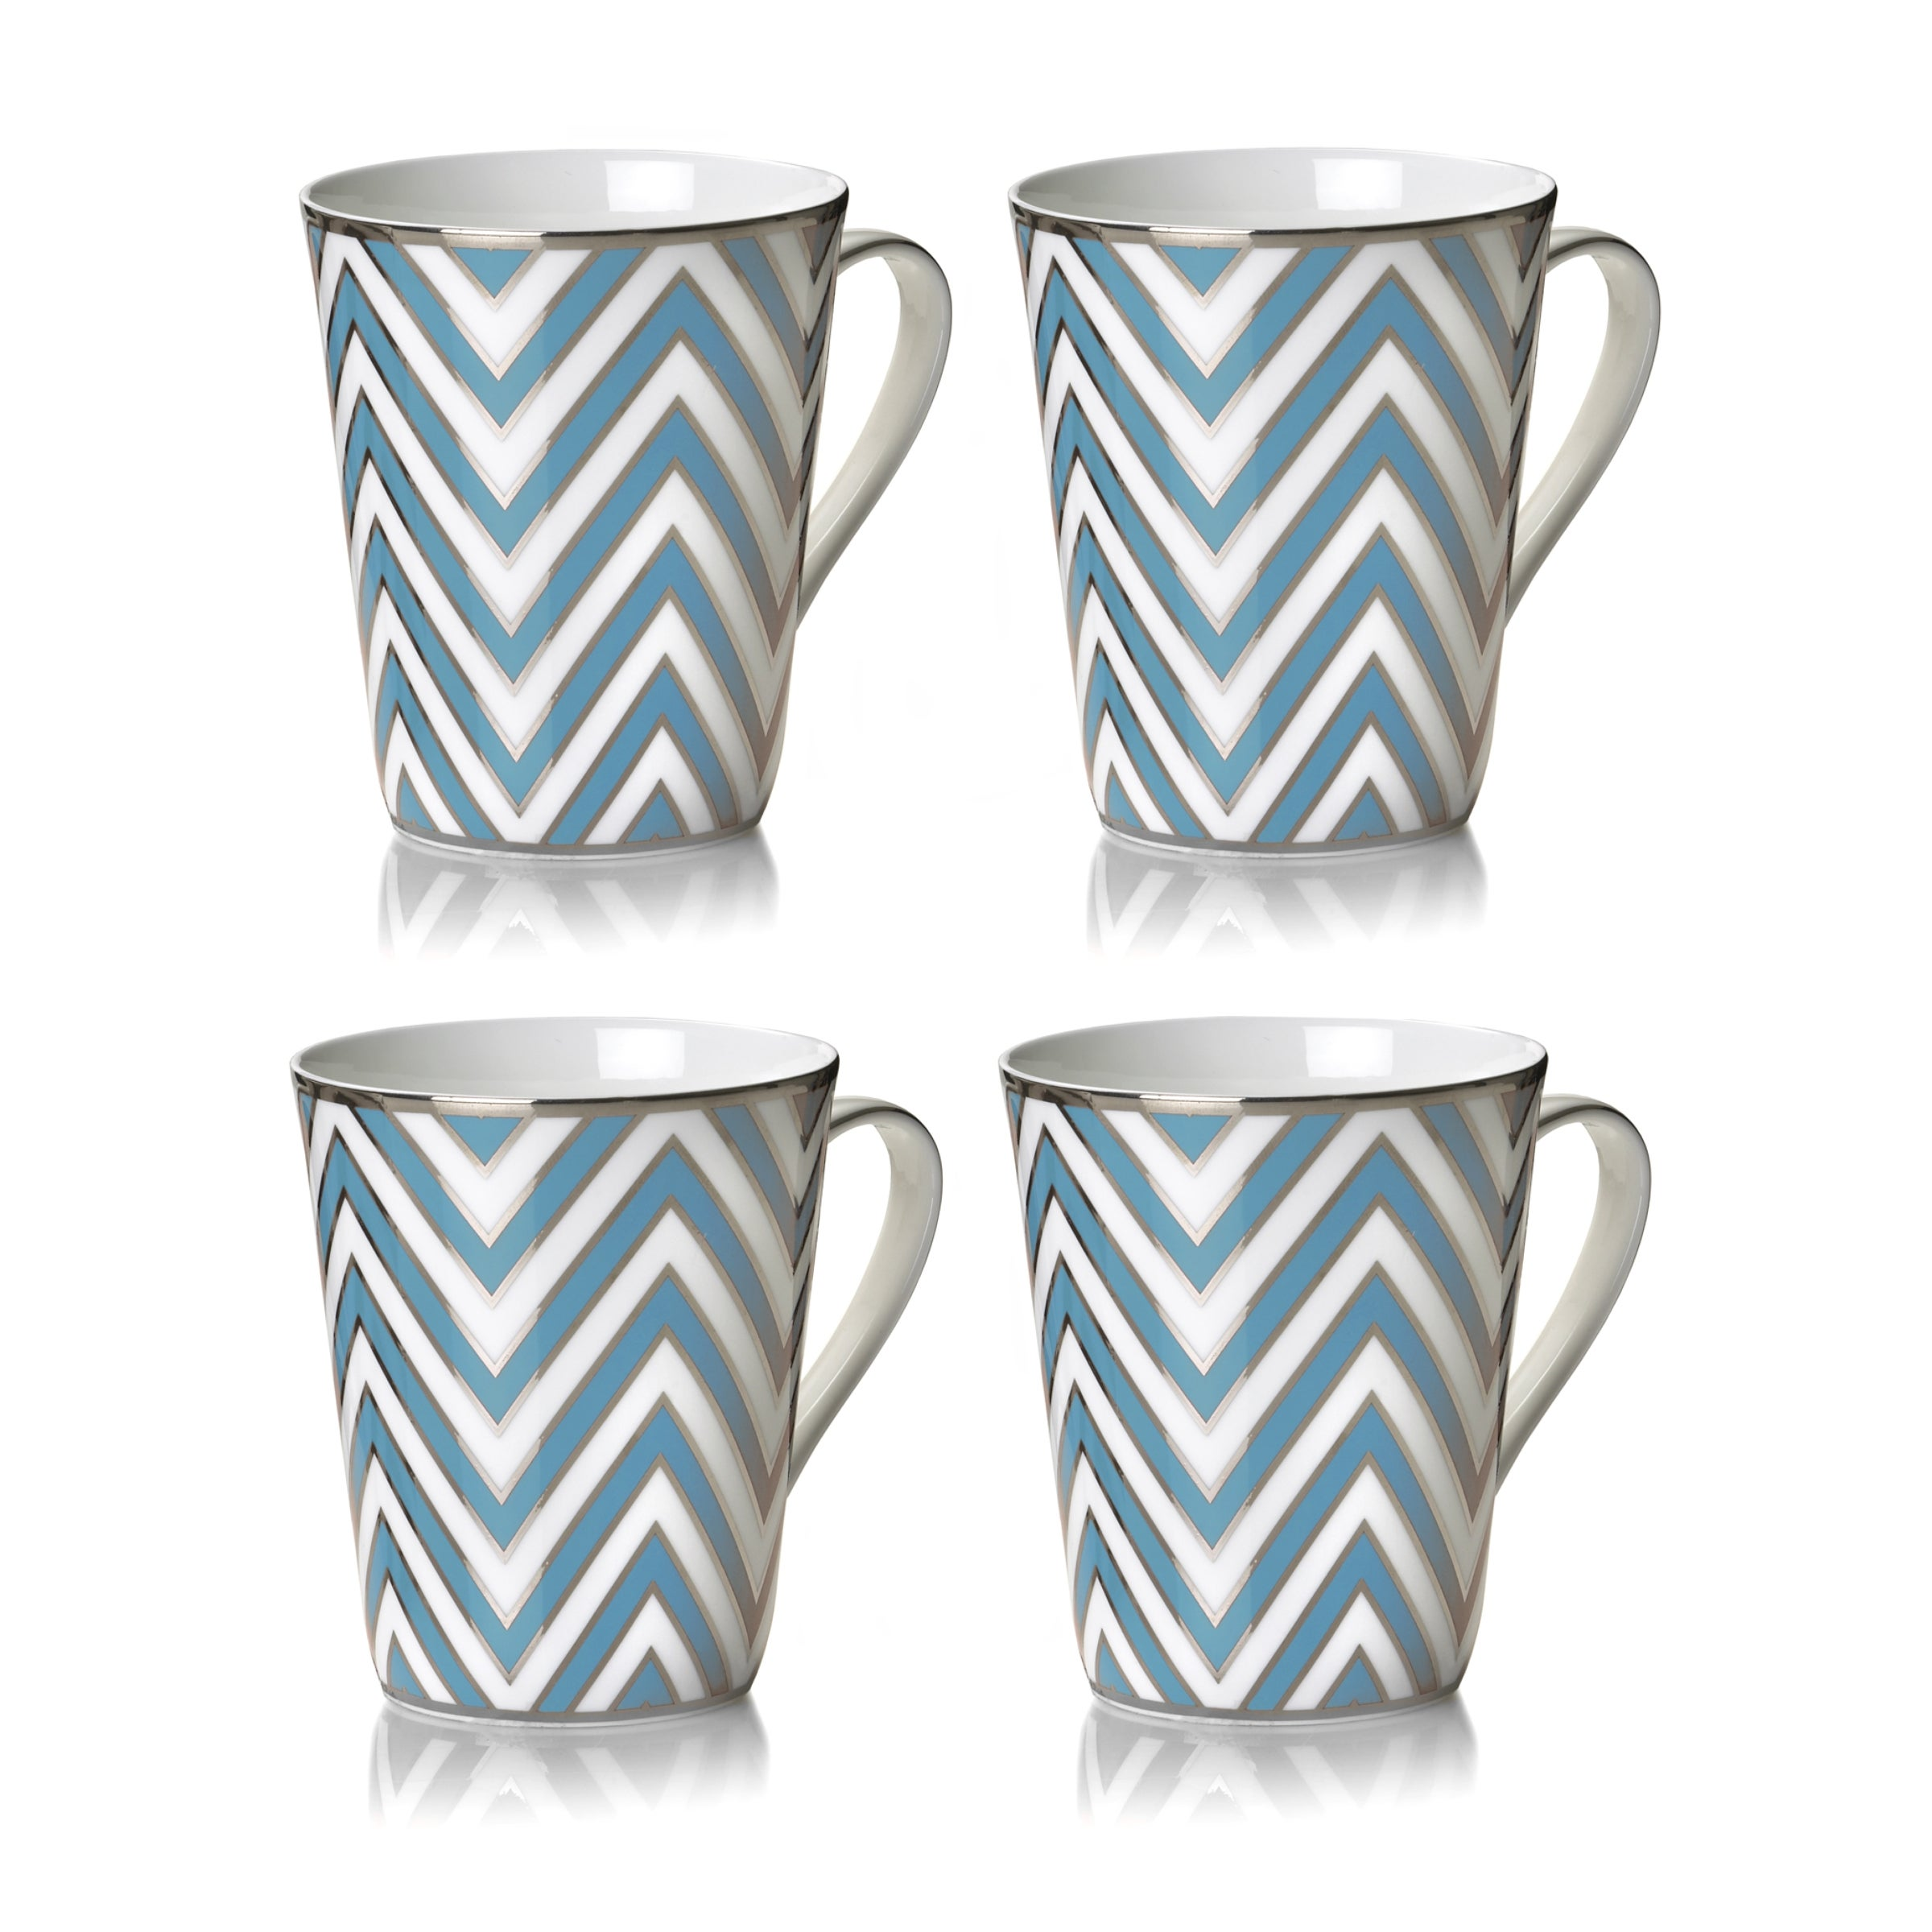 Mikasa Color Studio Turquoise and Platinum Zigzag Mugs (Set of 4)